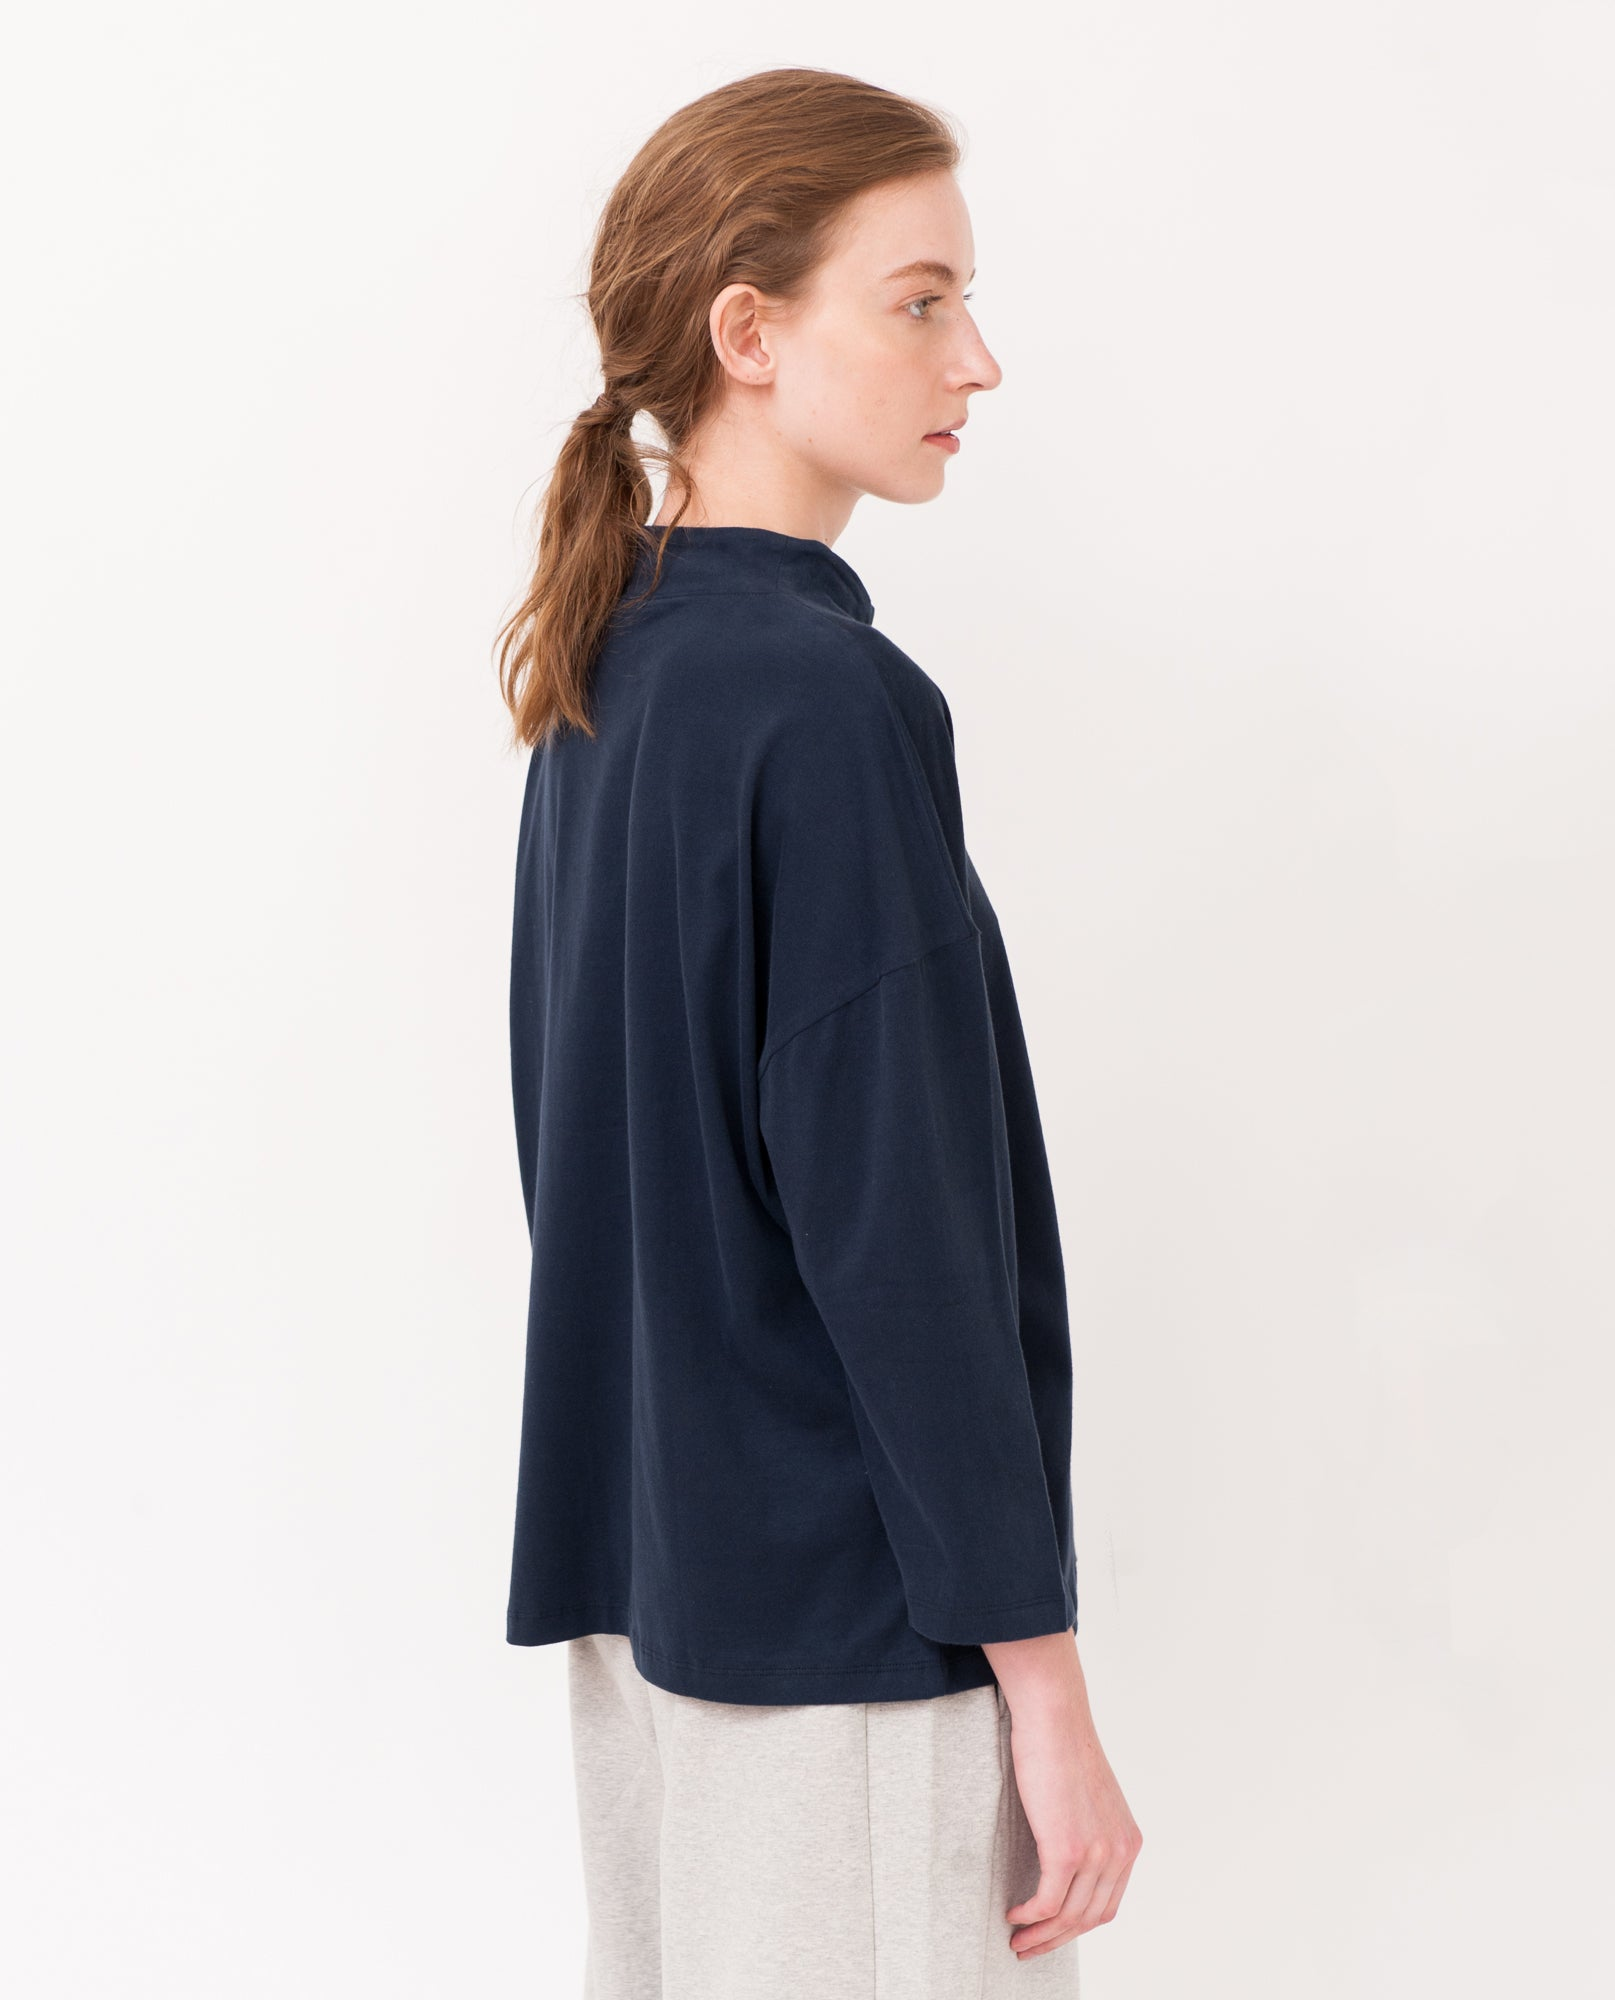 PREMA Organic Cotton Top In Navy